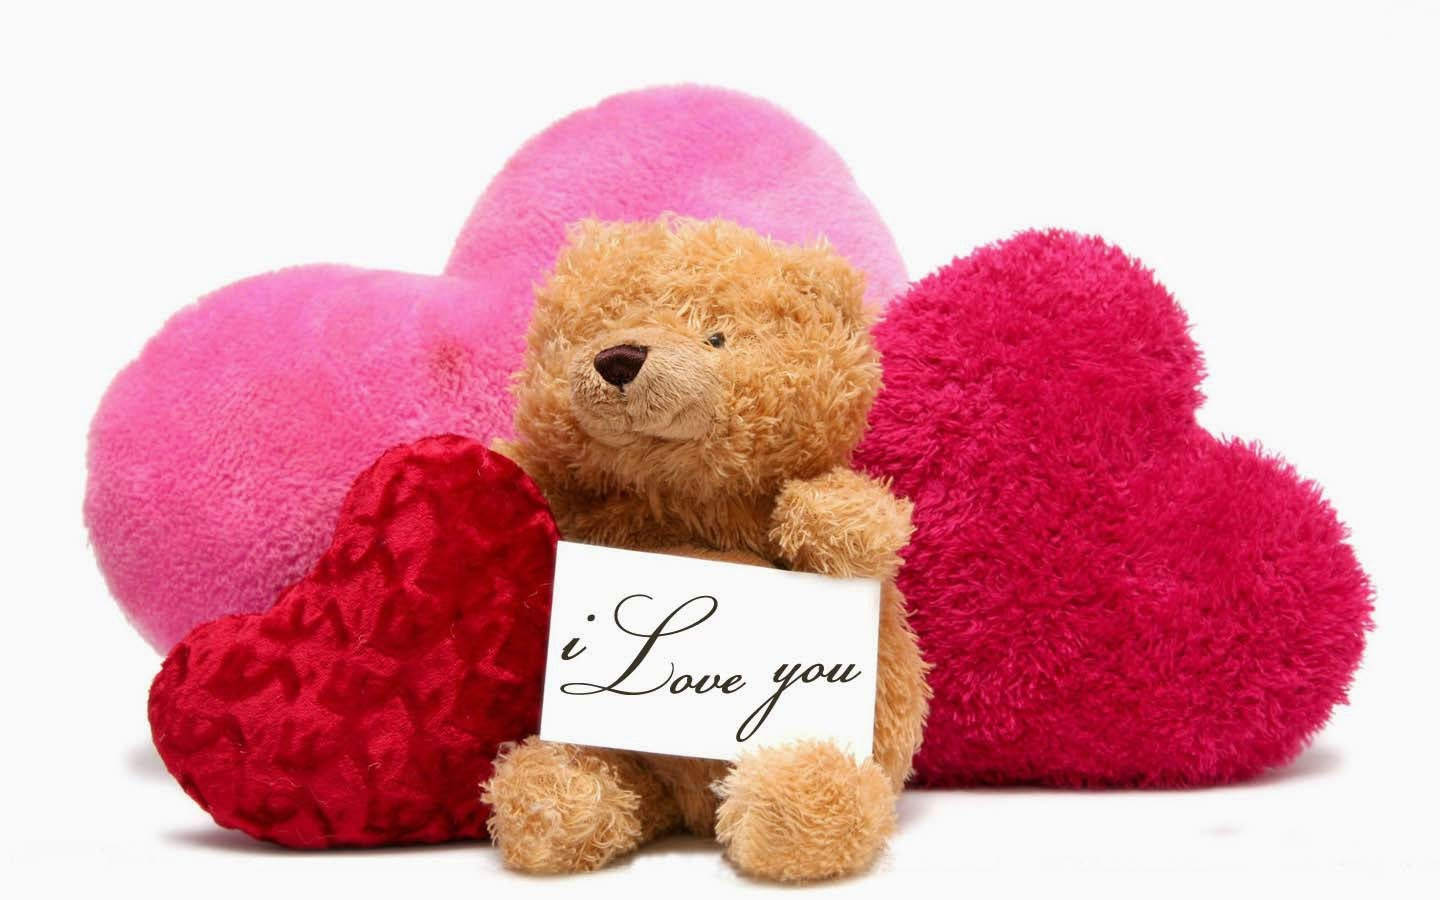 i-love-my-teddy-bear-nice-images